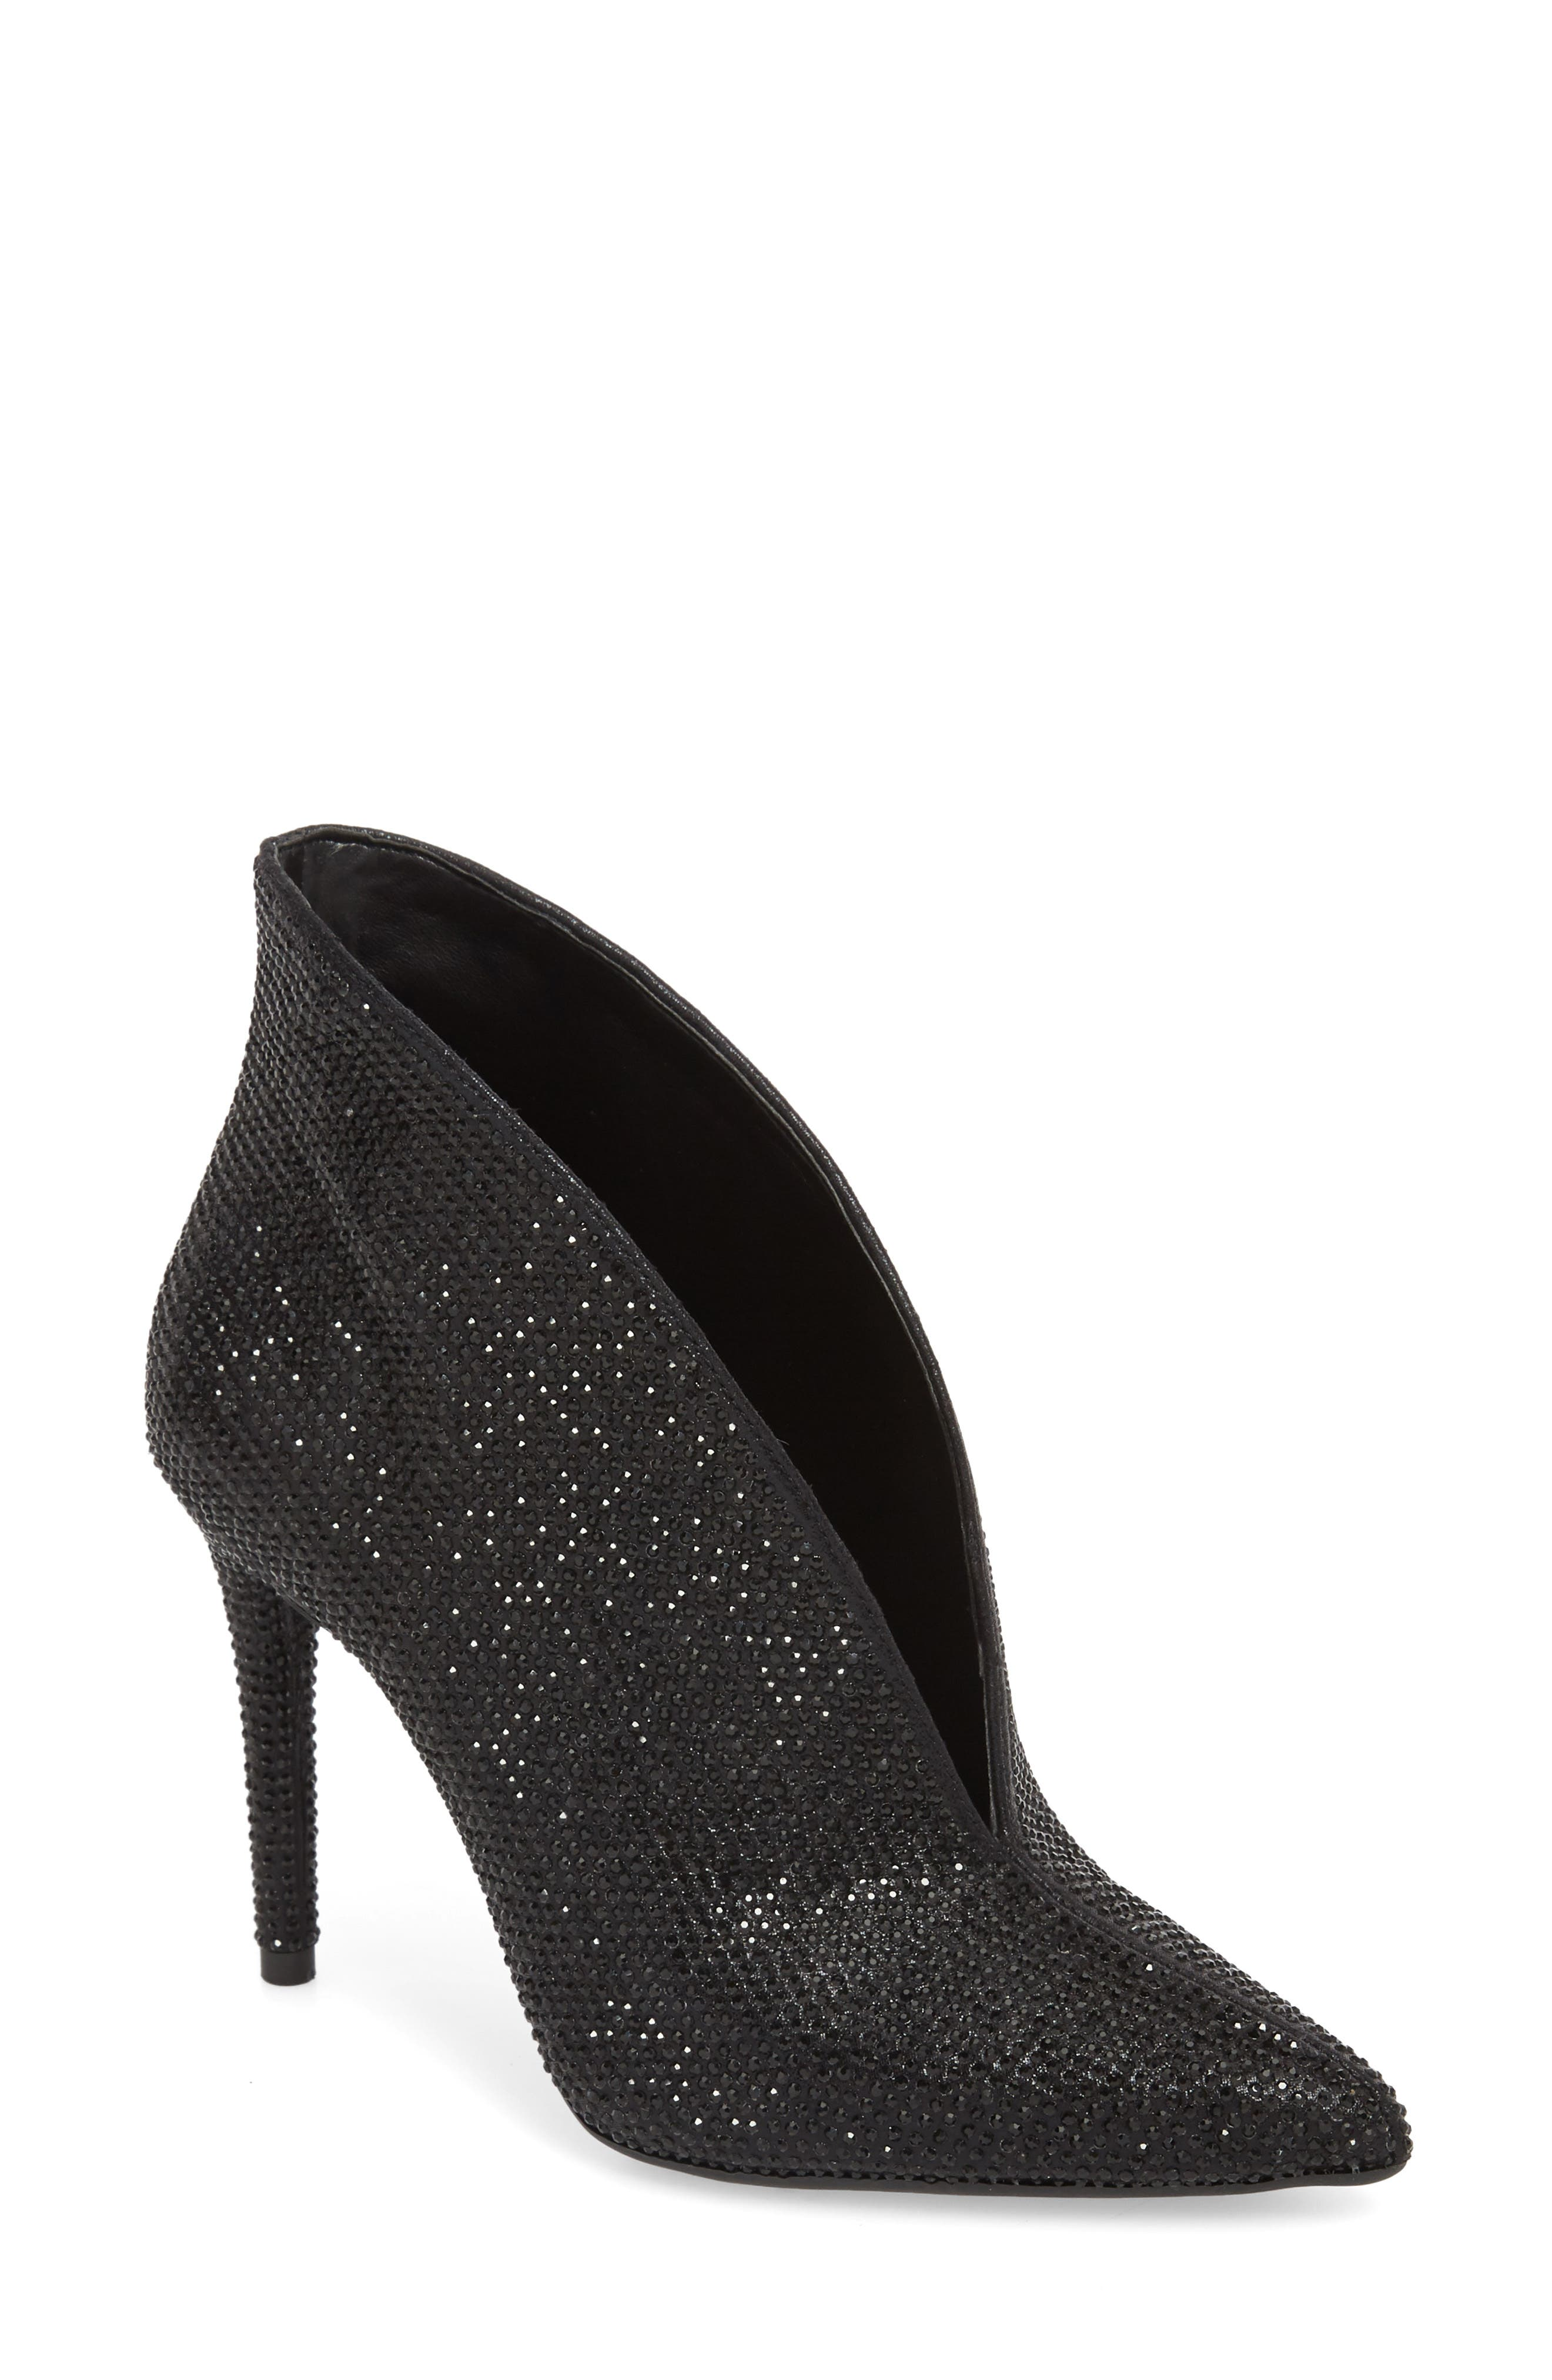 Lasnia Embellished Bootie,                             Main thumbnail 1, color,